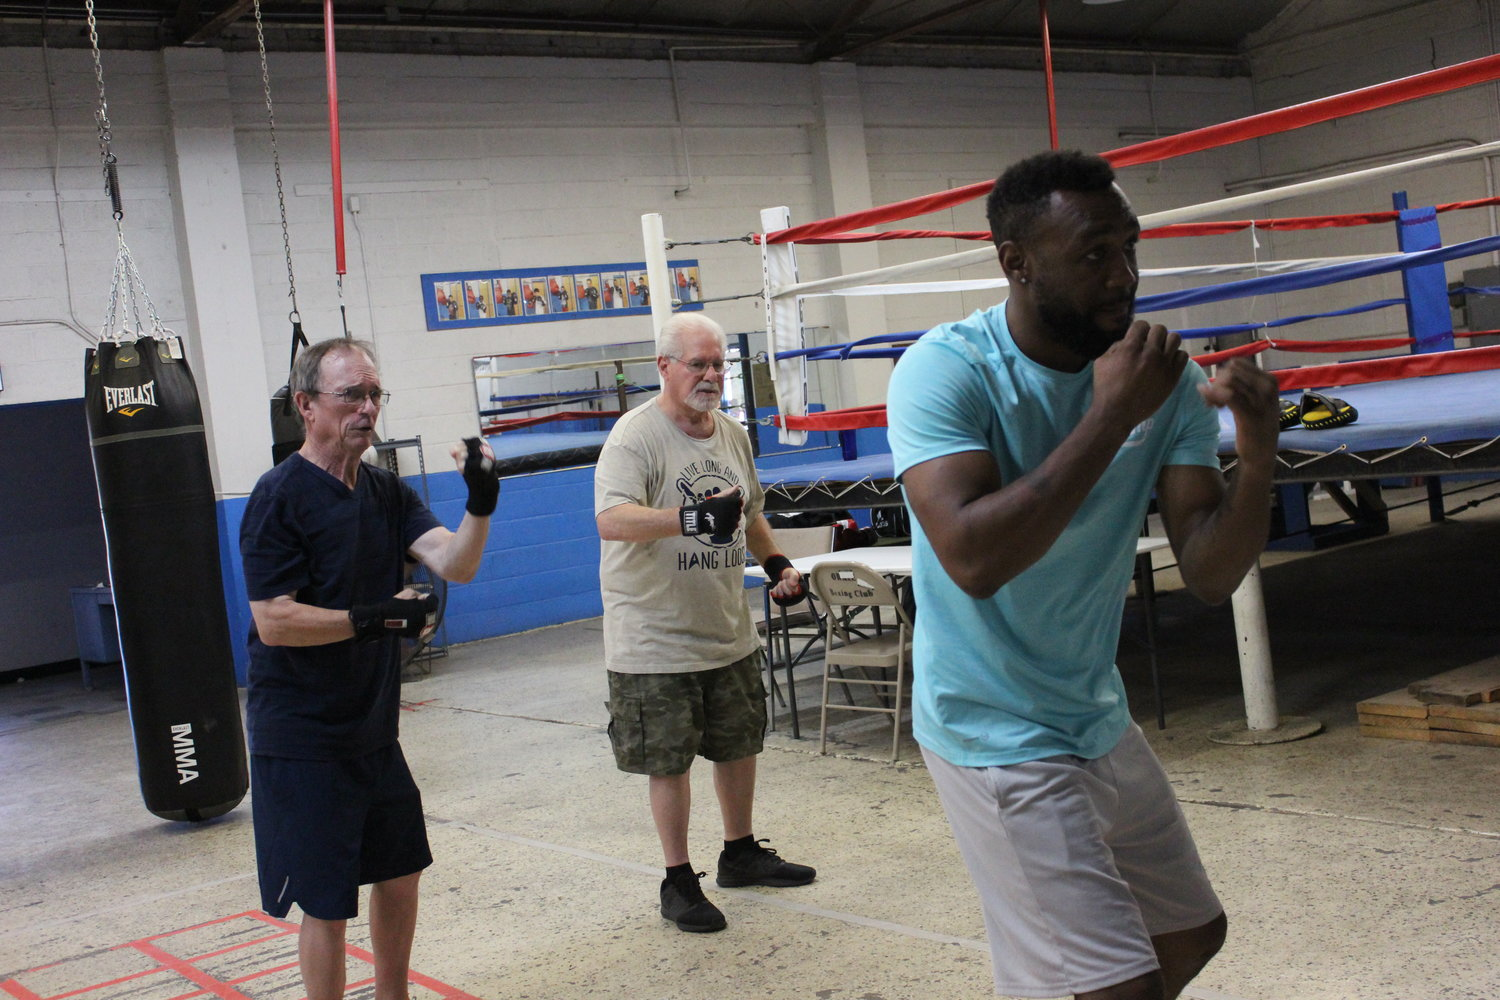 Austin Trout leads Bob Skolnick, right, and Jon Roberts, left, through various punching combinations during a Rock Steady Boxing class on Friday, Aug. 2.